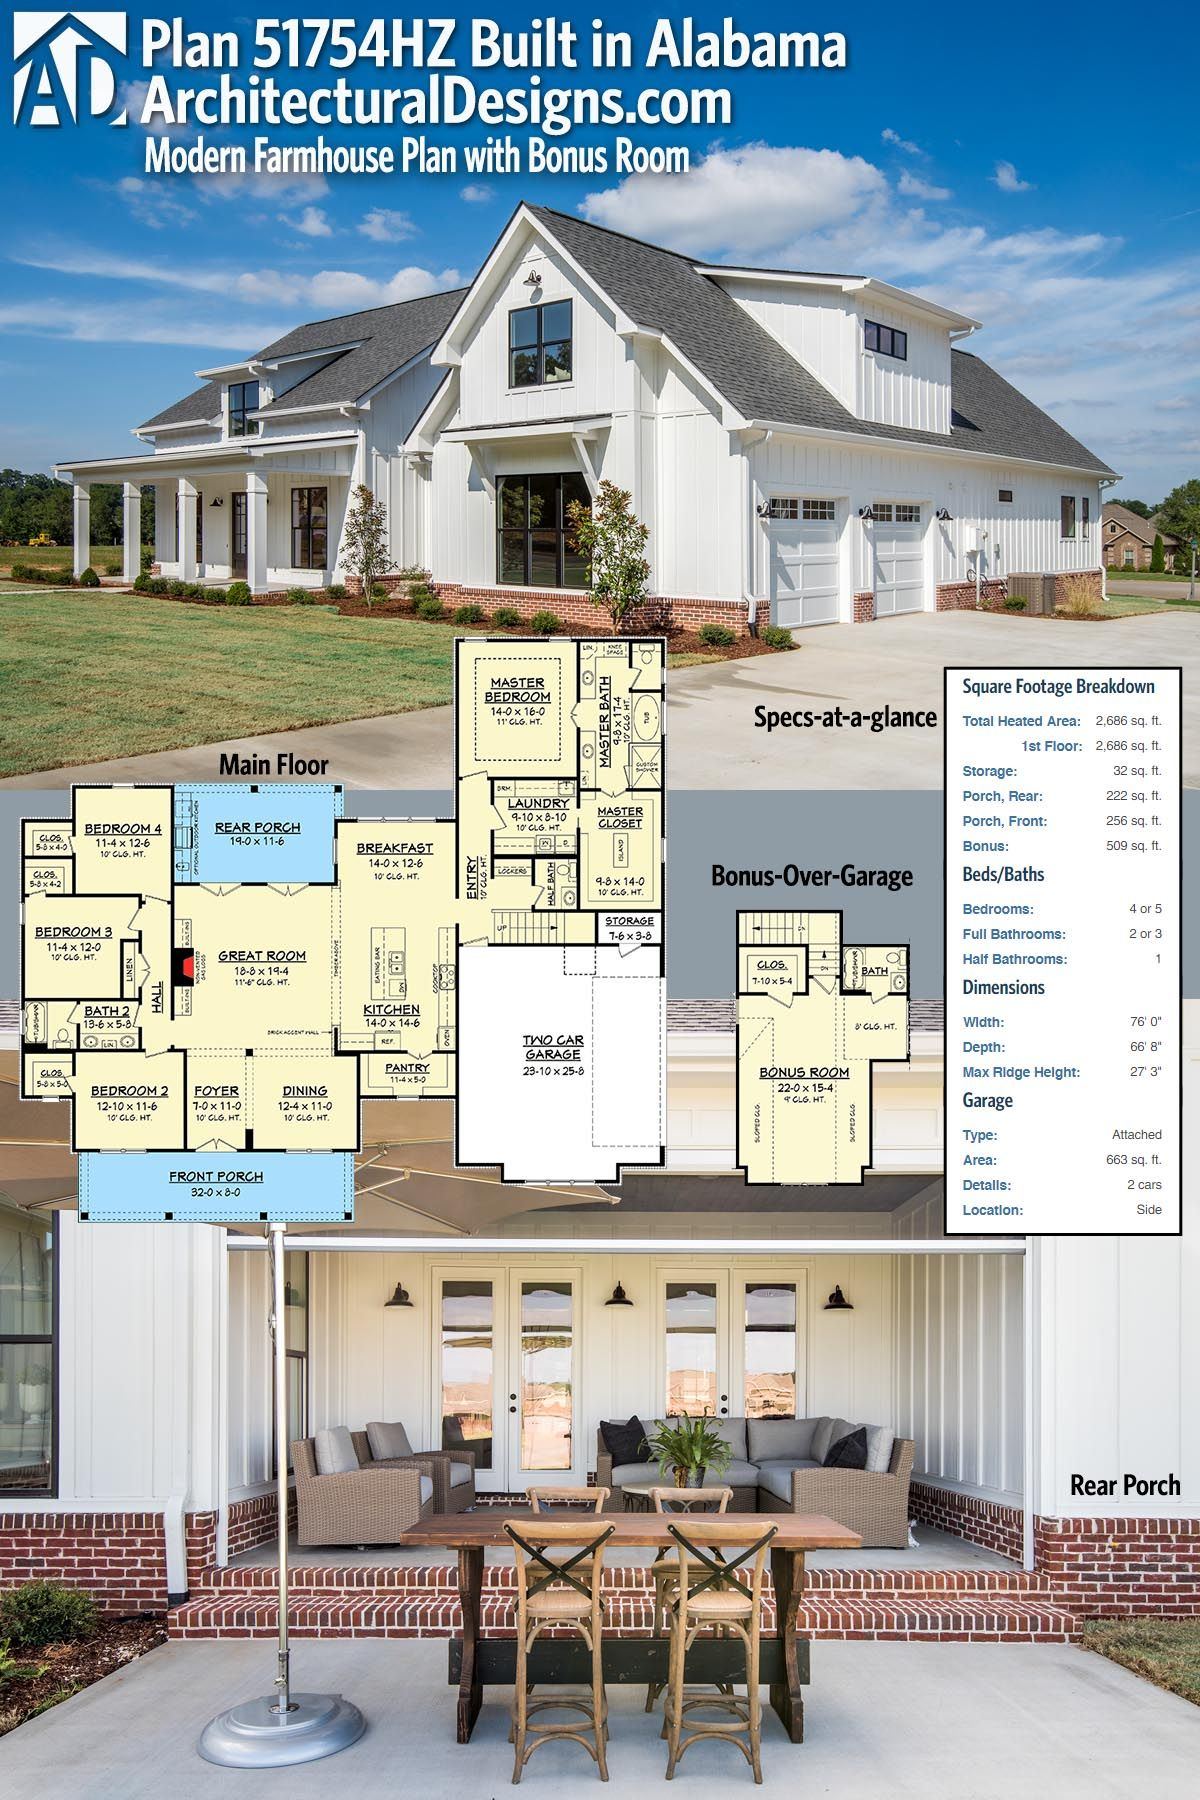 House Designs Photos Of Models Building Exterior Design: Plan 51754HZ: Modern Farmhouse Plan With Bonus Room In